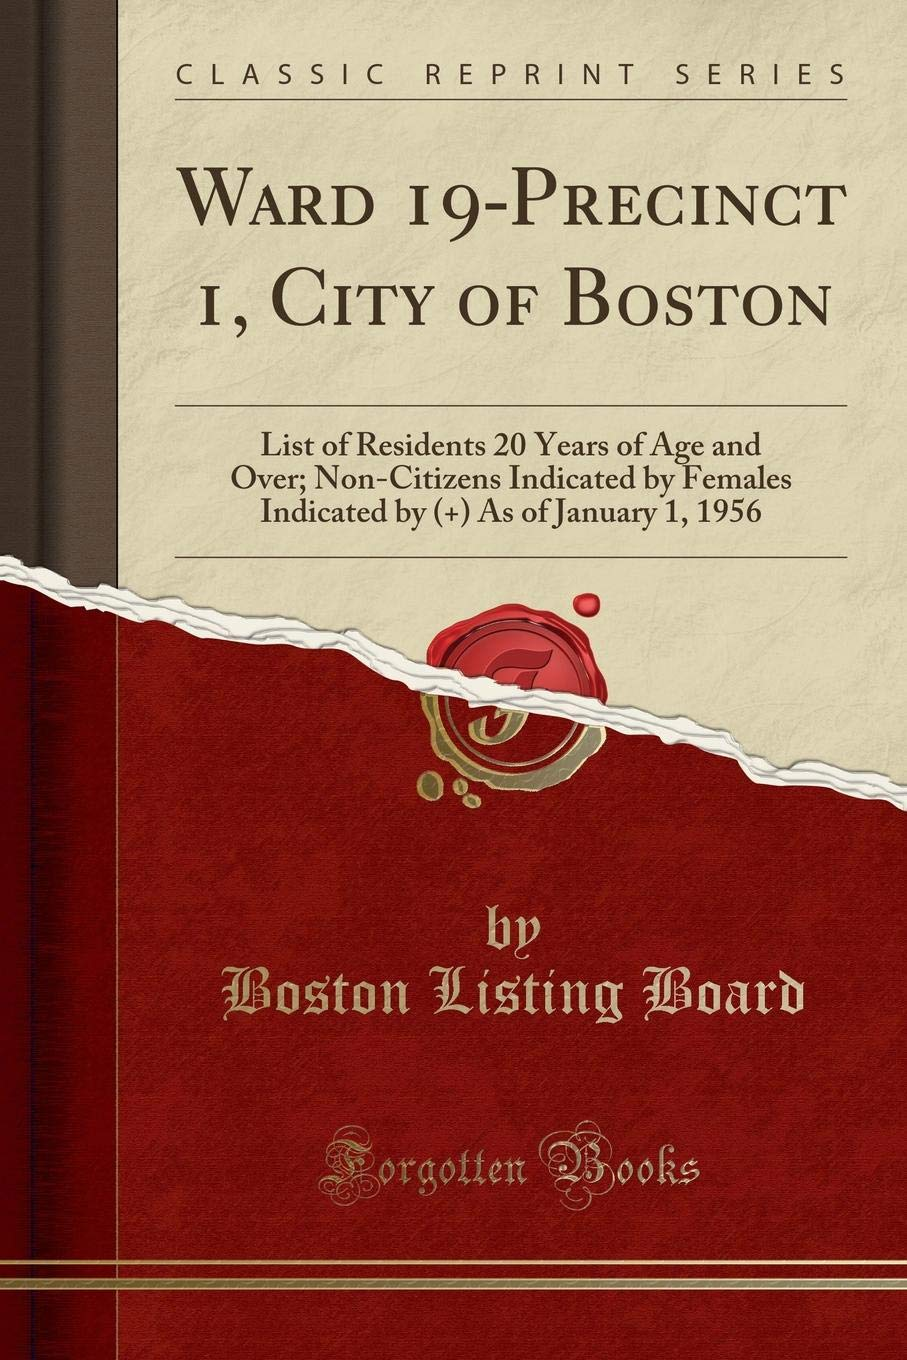 Read Online Ward 19-Precinct 1, City of Boston: List of Residents 20 Years of Age and Over; Non-Citizens Indicated by Females Indicated by (+) As of January 1, 1956 (Classic Reprint) ebook